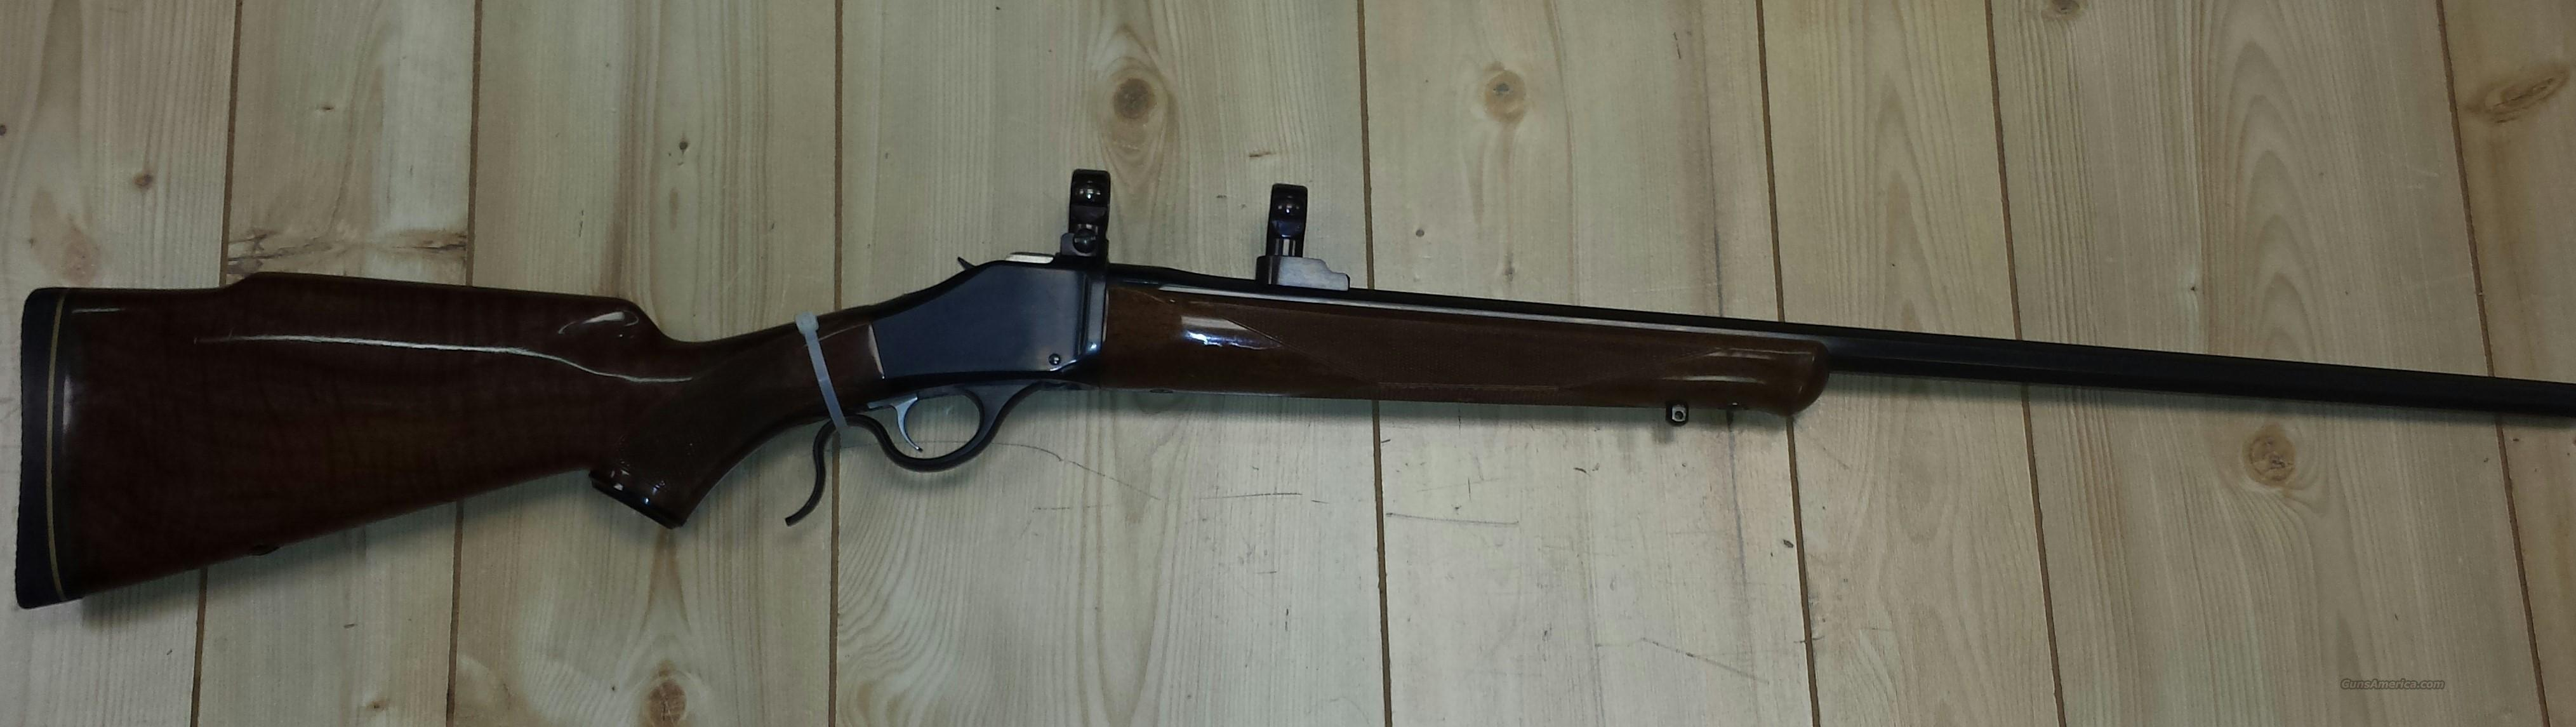 BROWNING 78 25-06  Guns > Rifles > Browning Rifles > Singe Shot